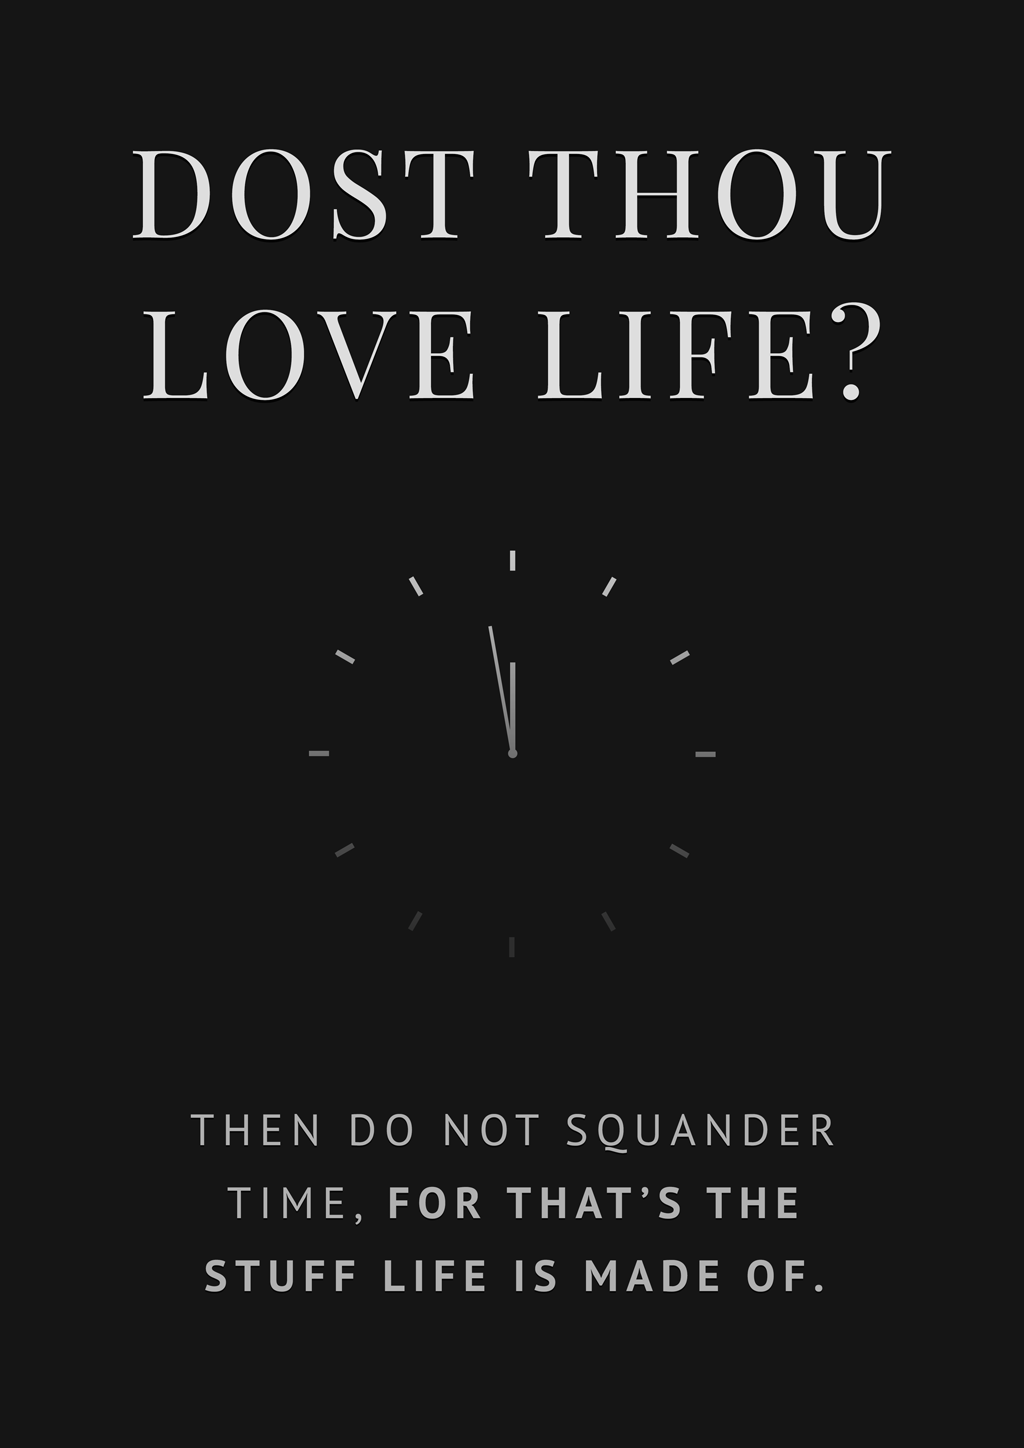 [image] Dost thou Love Life? (A quote by benjamin Franklin)